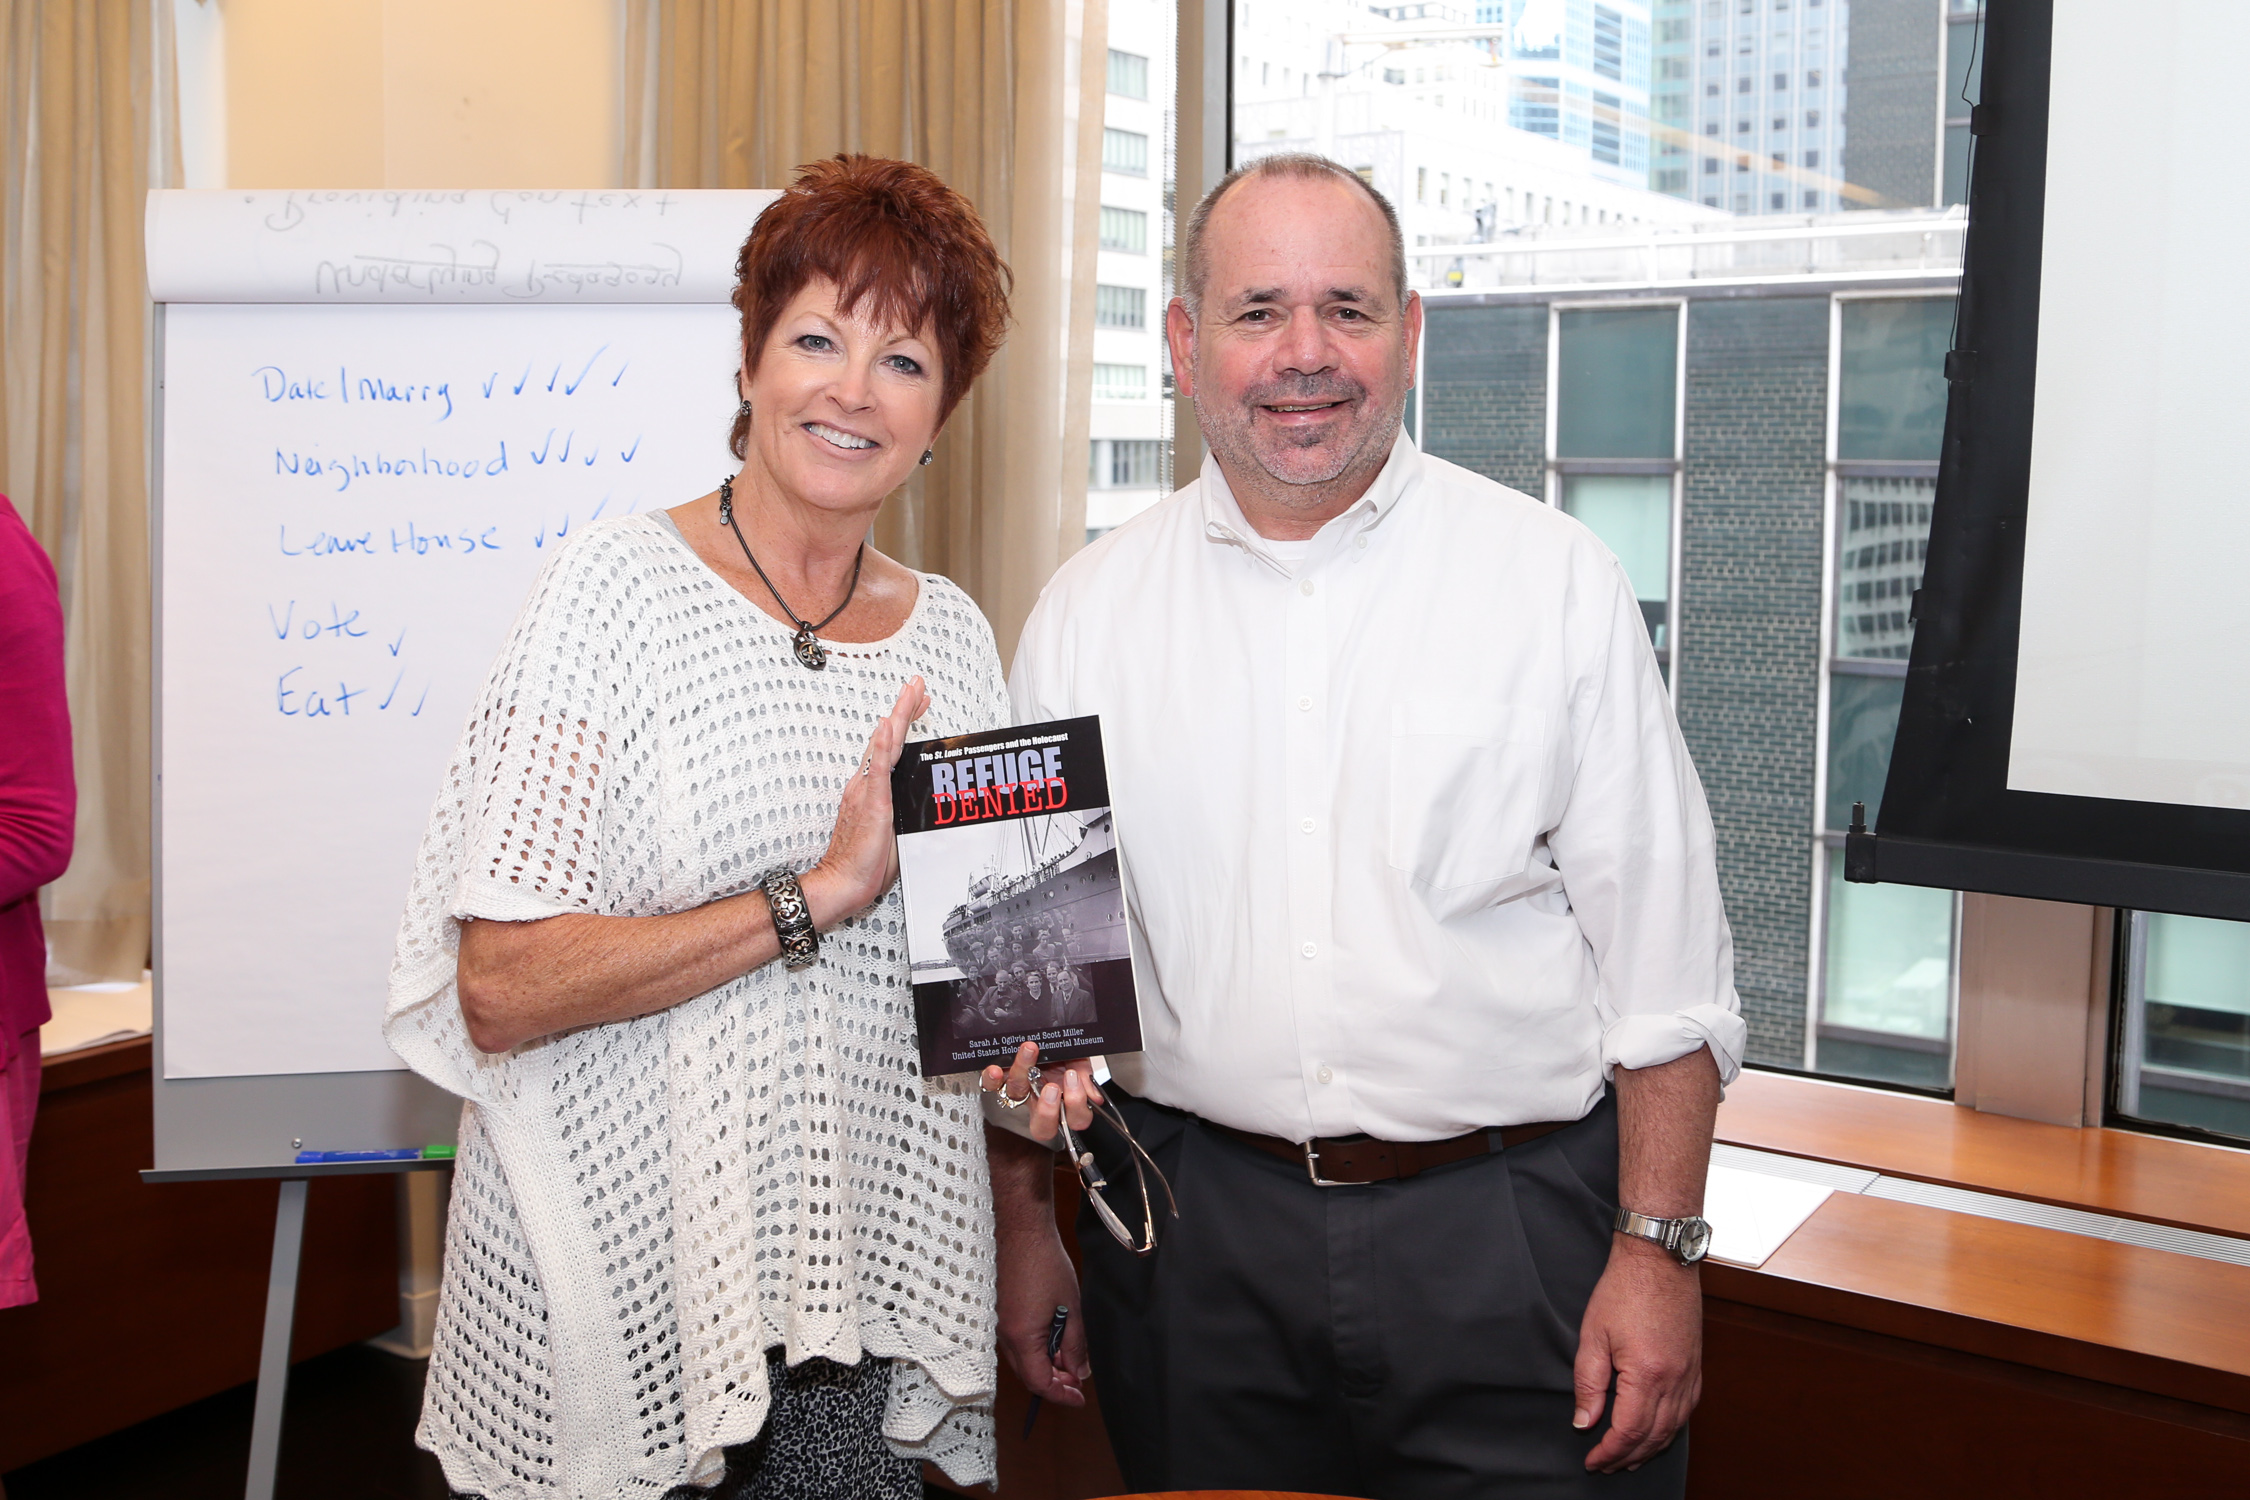 Scott Miller signed his book on the MS St Louis at the 2014 Wolf Conference